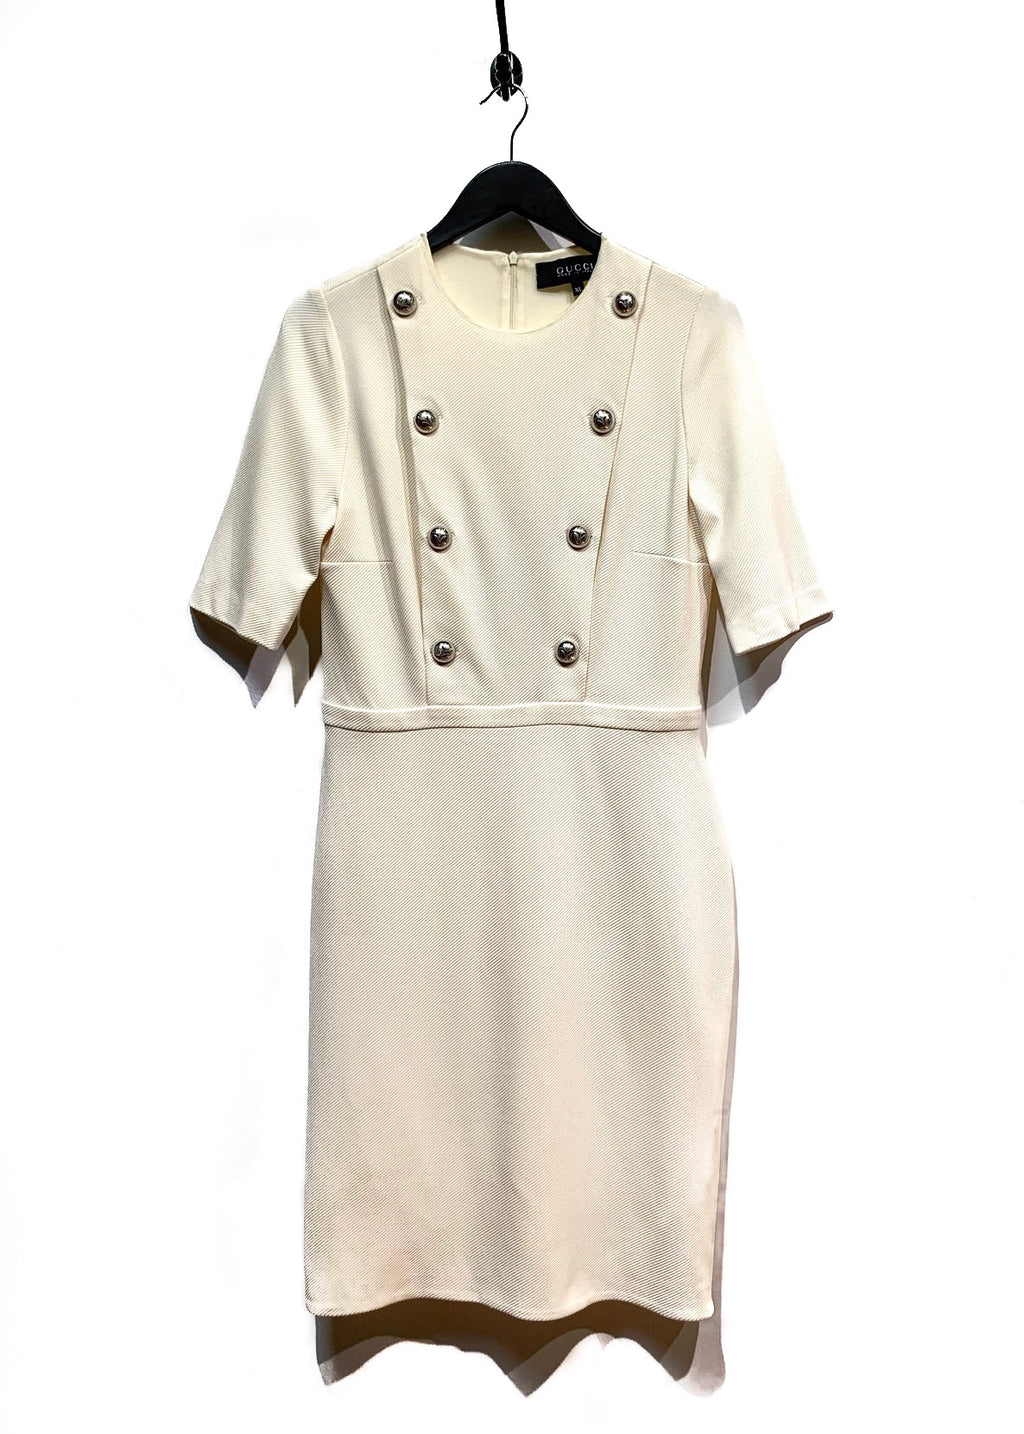 Gucci Ivory Sergé Button Embellished Short Sleeves Dress